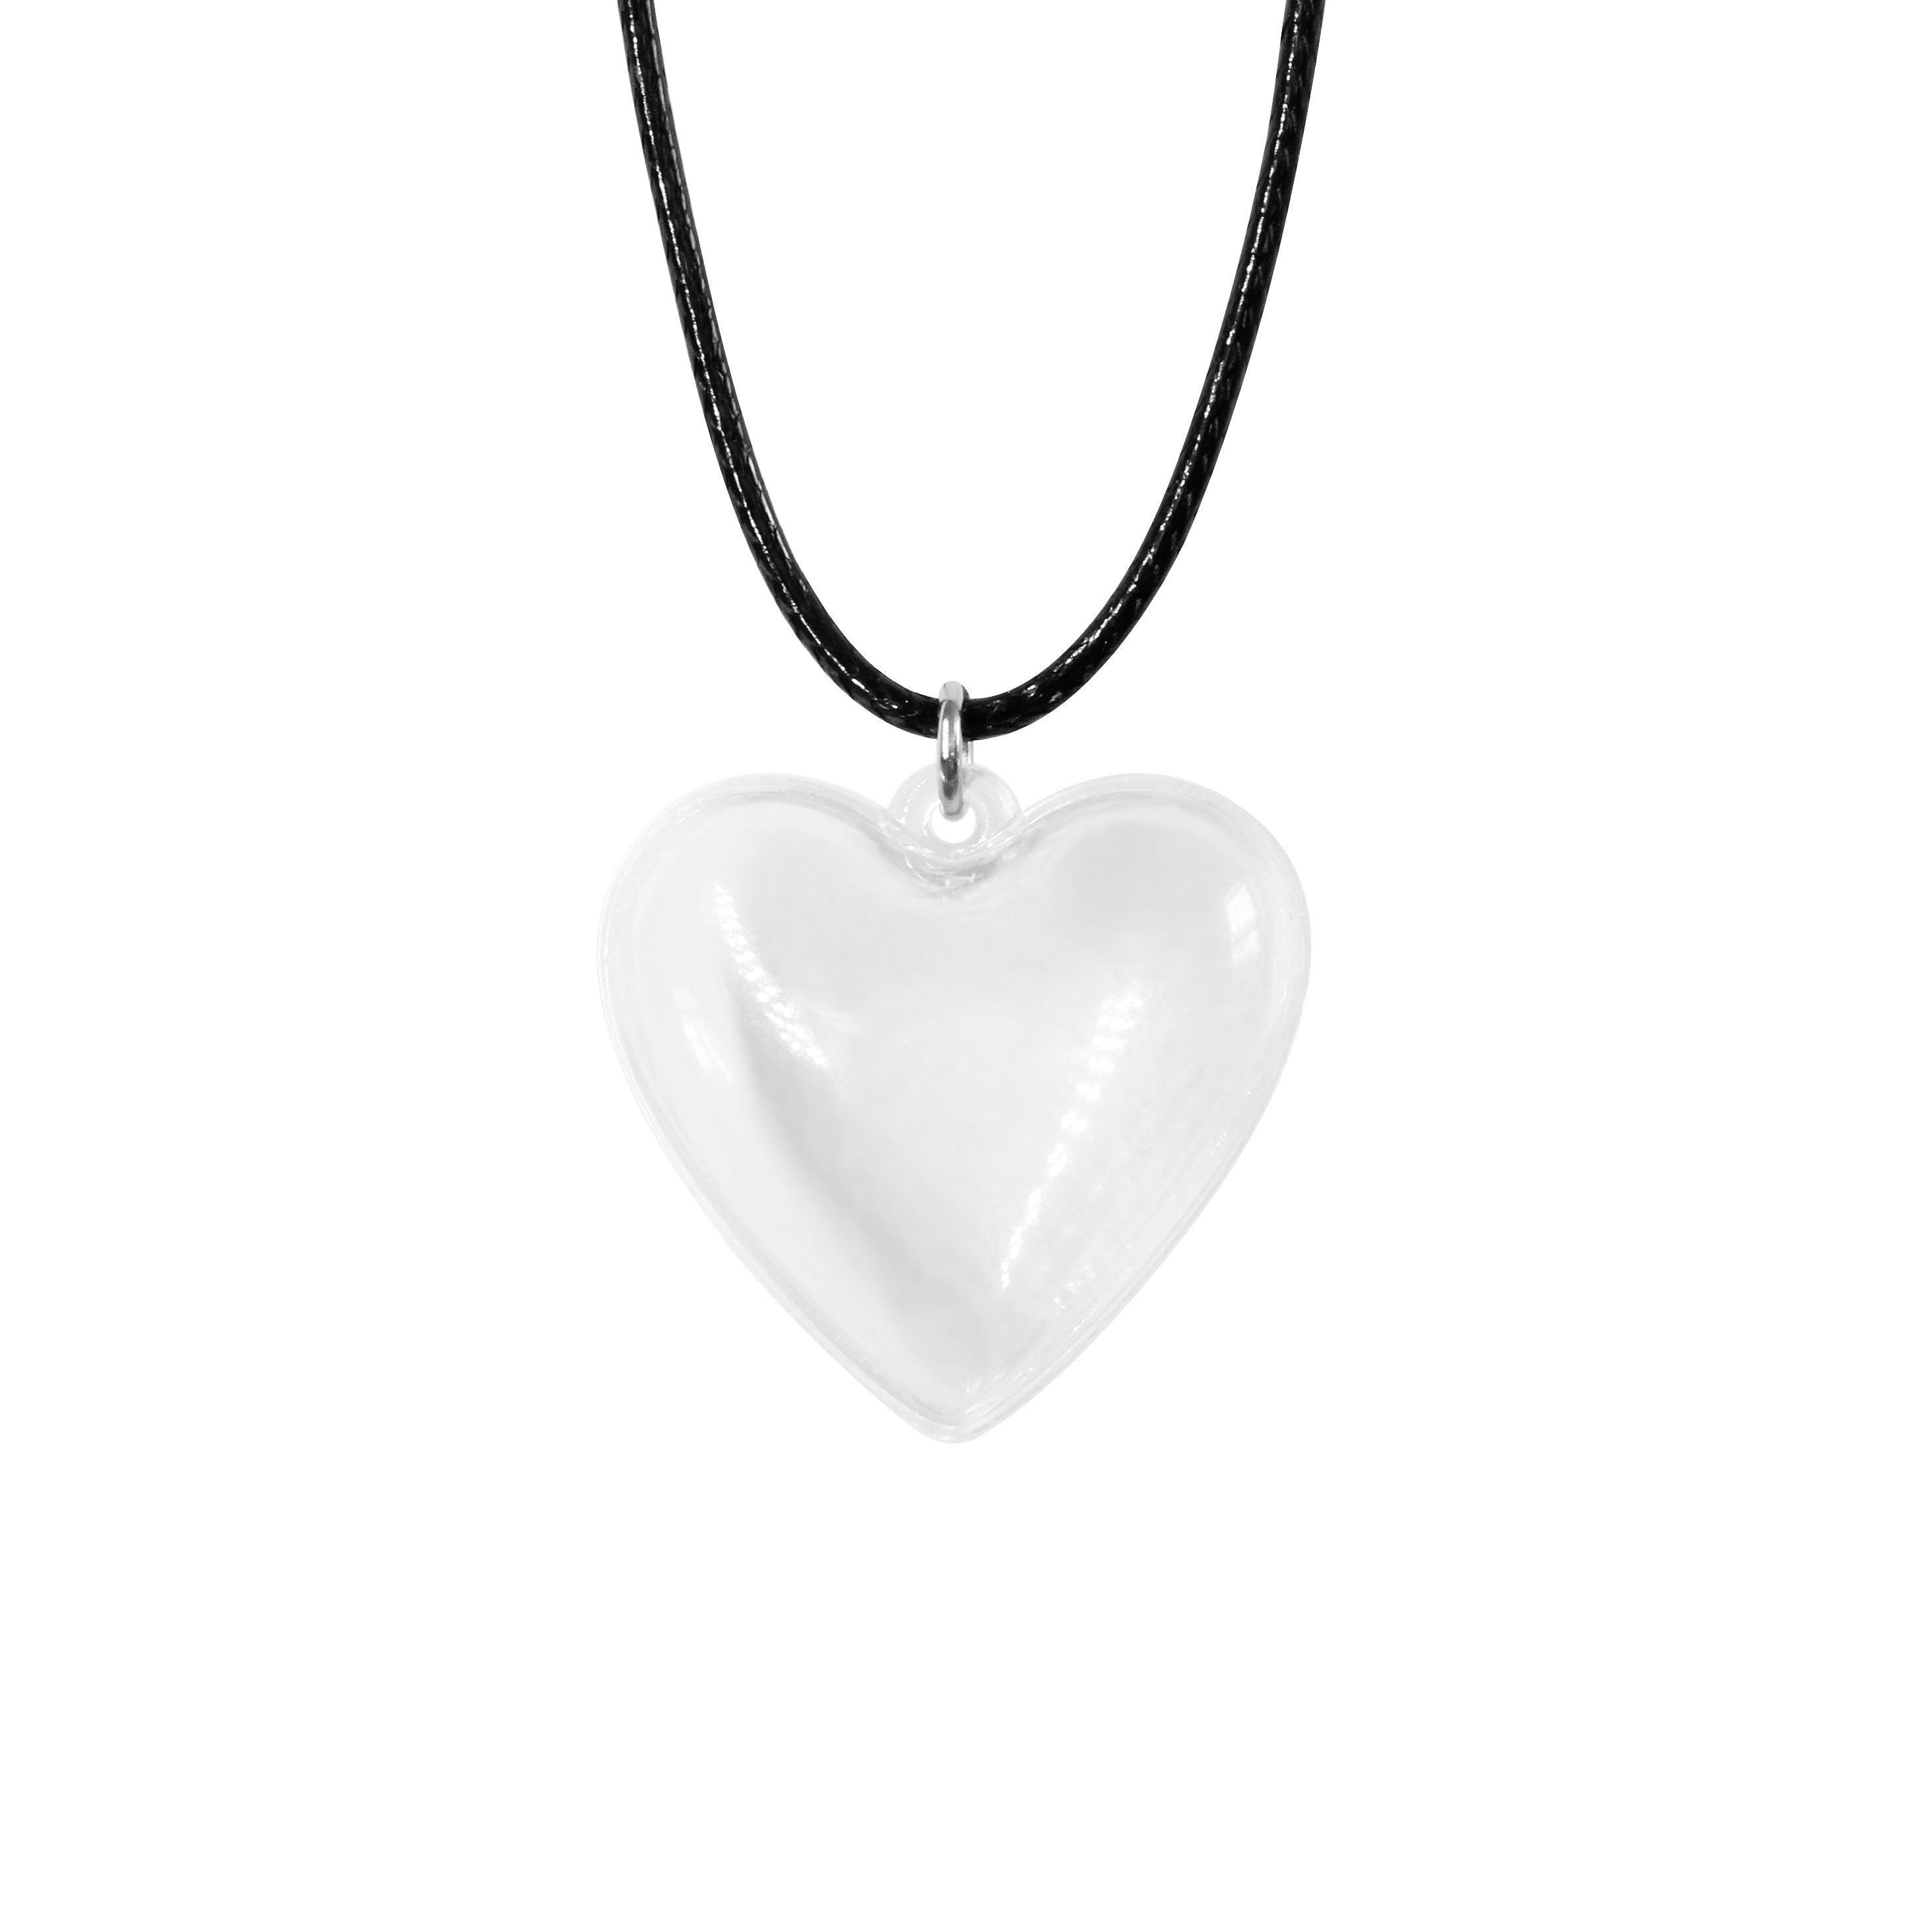 Keepsake Capsule Heart Necklace - O YEAH GIFTS